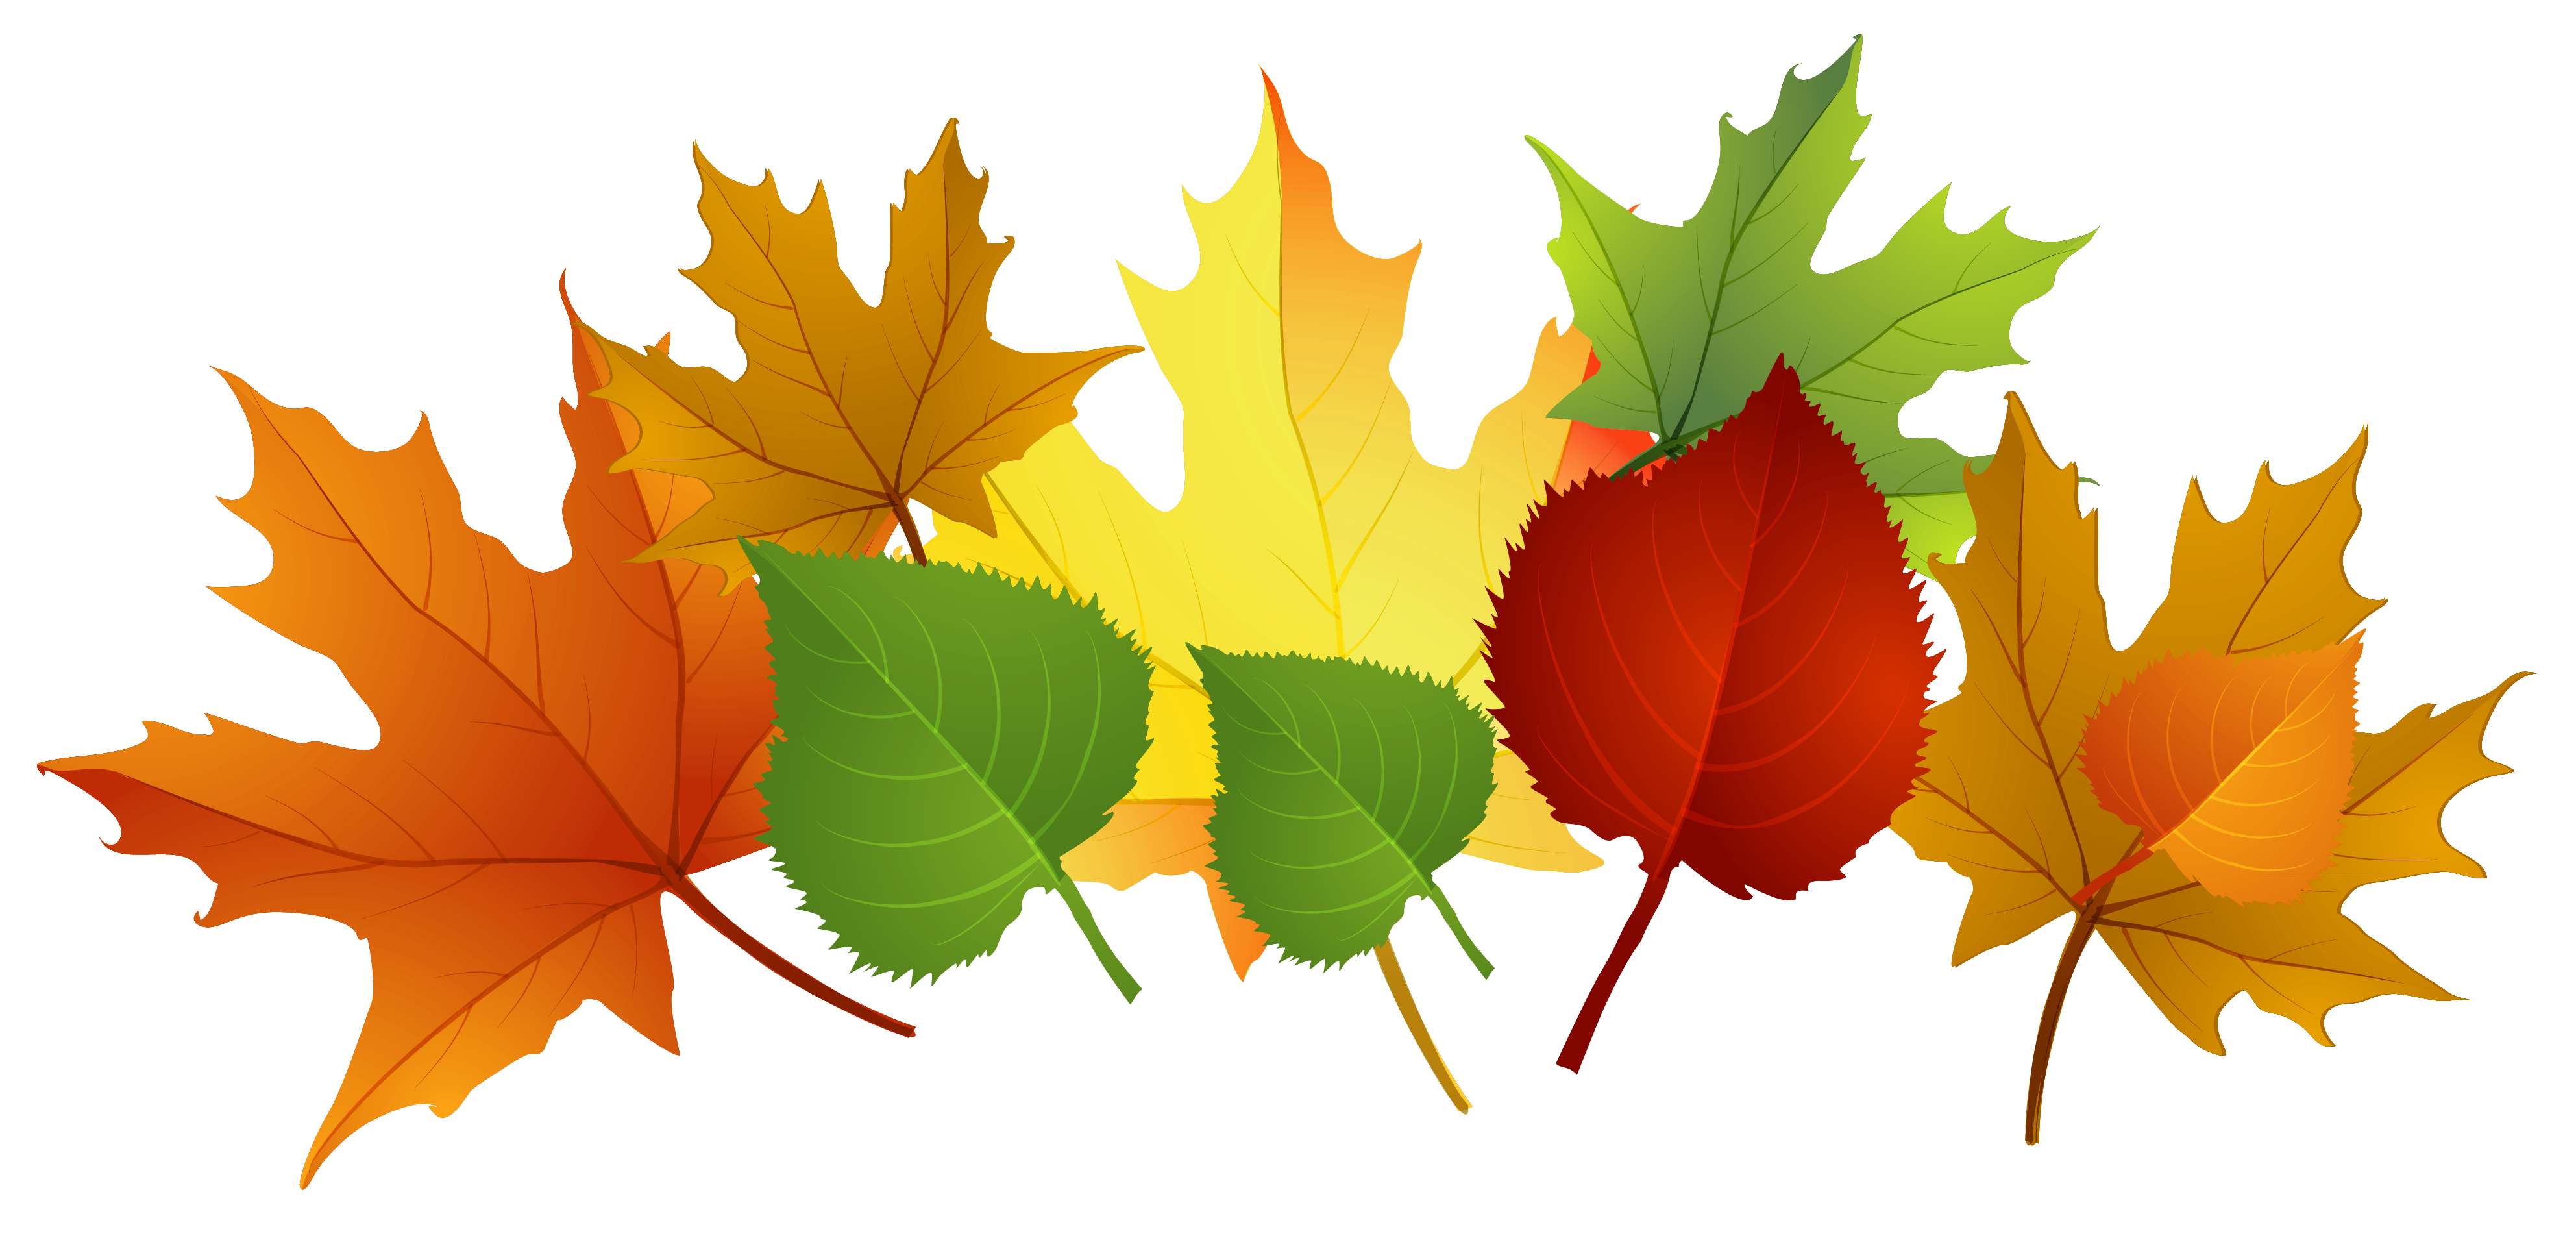 fall-leaves.png